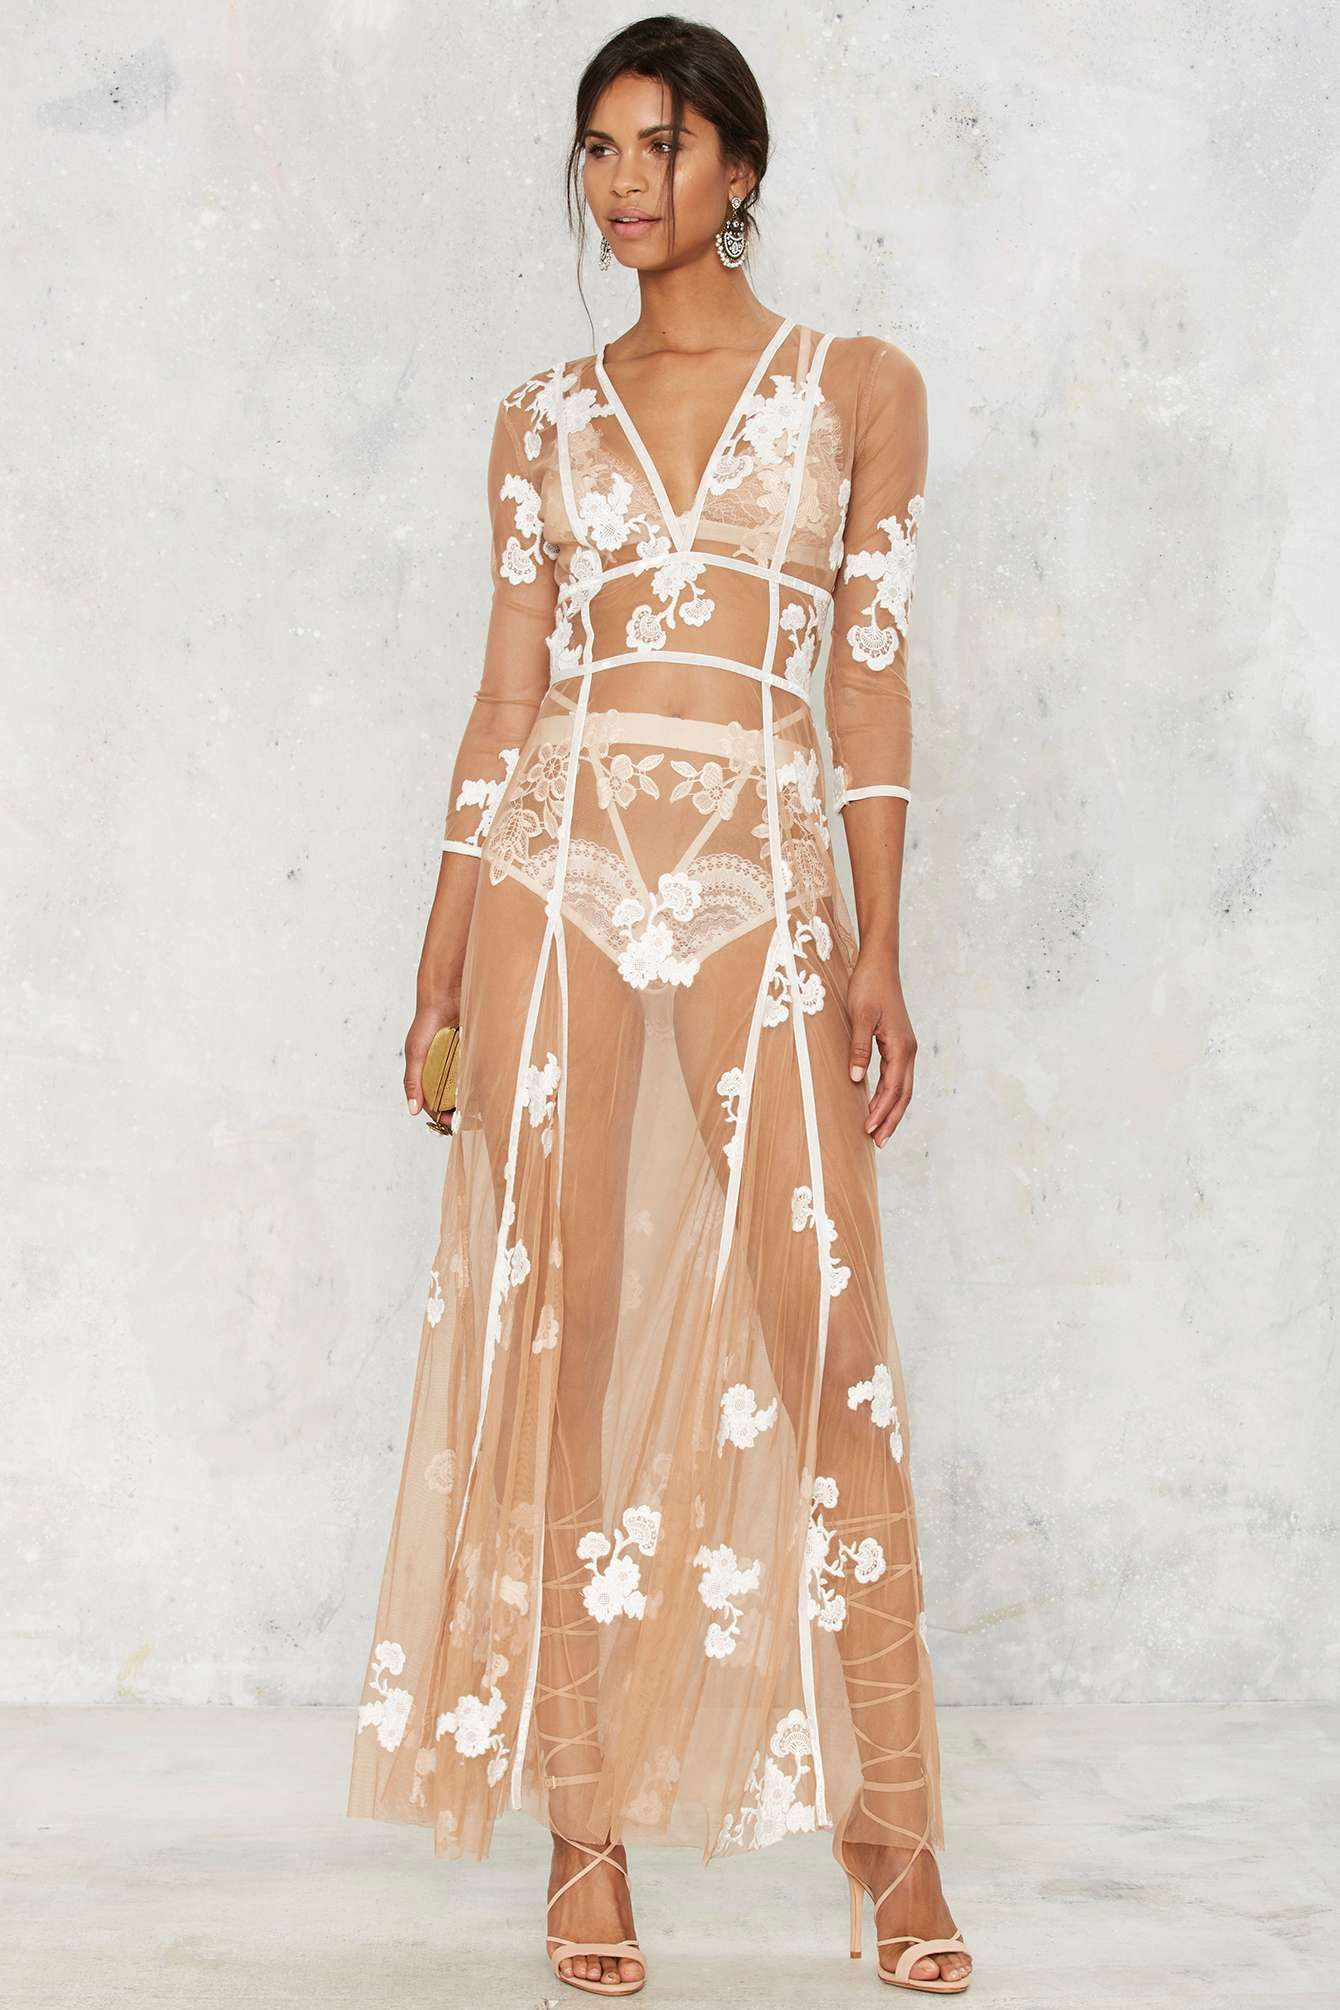 5c0e977155 Embroidered lace mesh dress. Sheer dress. Fashion. Honey moon dress ideas.  For Love   Lemons Embroidered Maxi Dress.